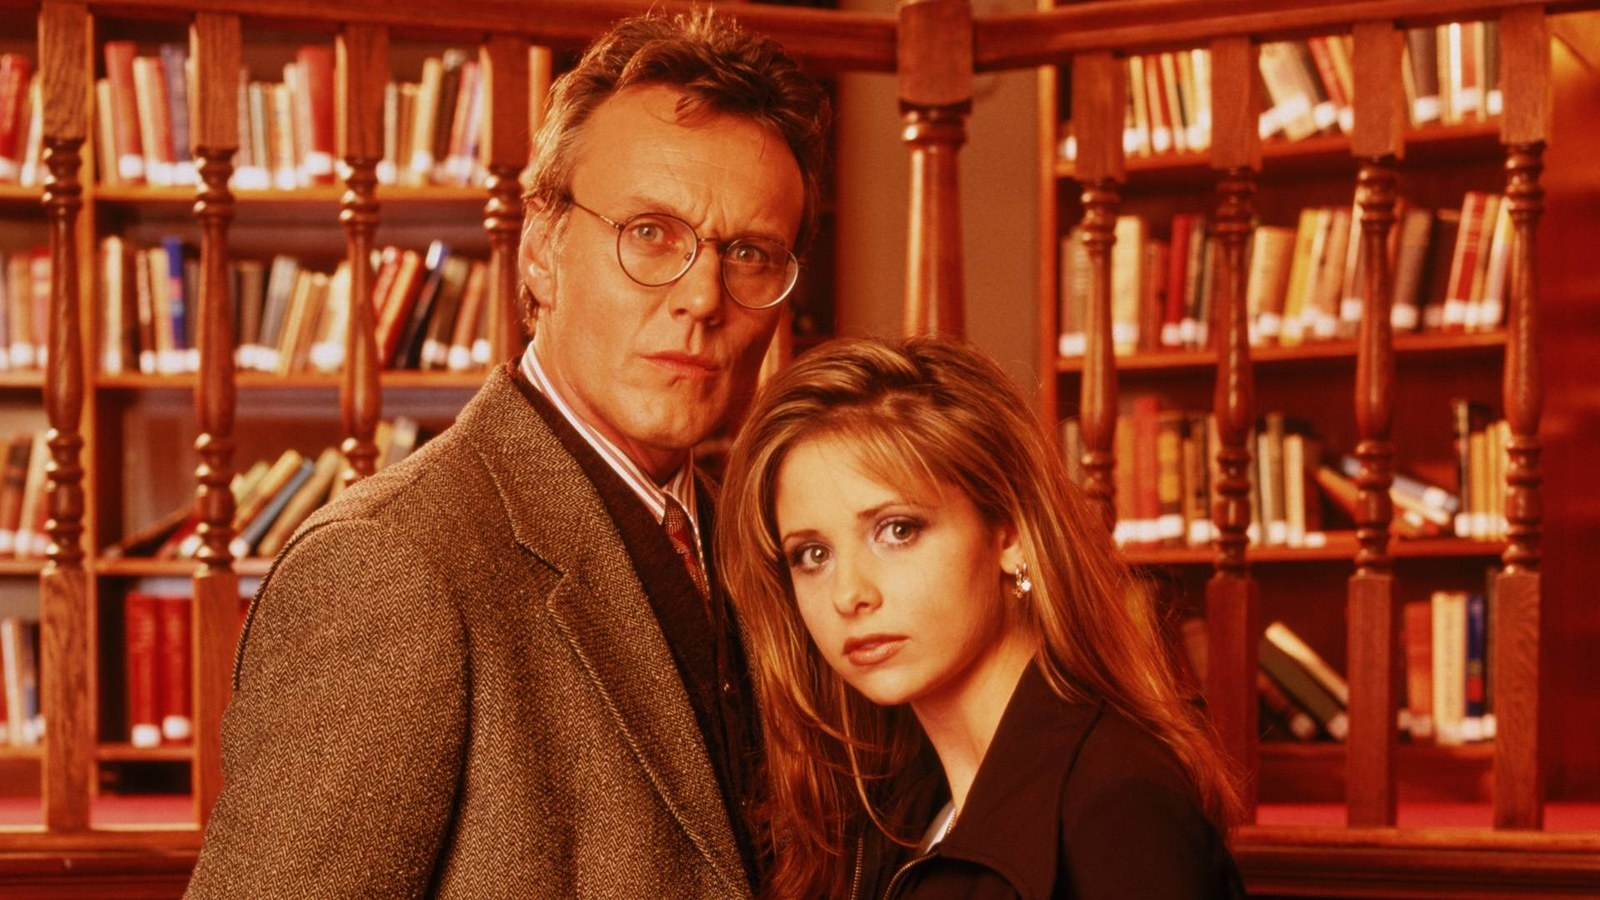 While the TV show was never made, Giles did star in his own comic book series.